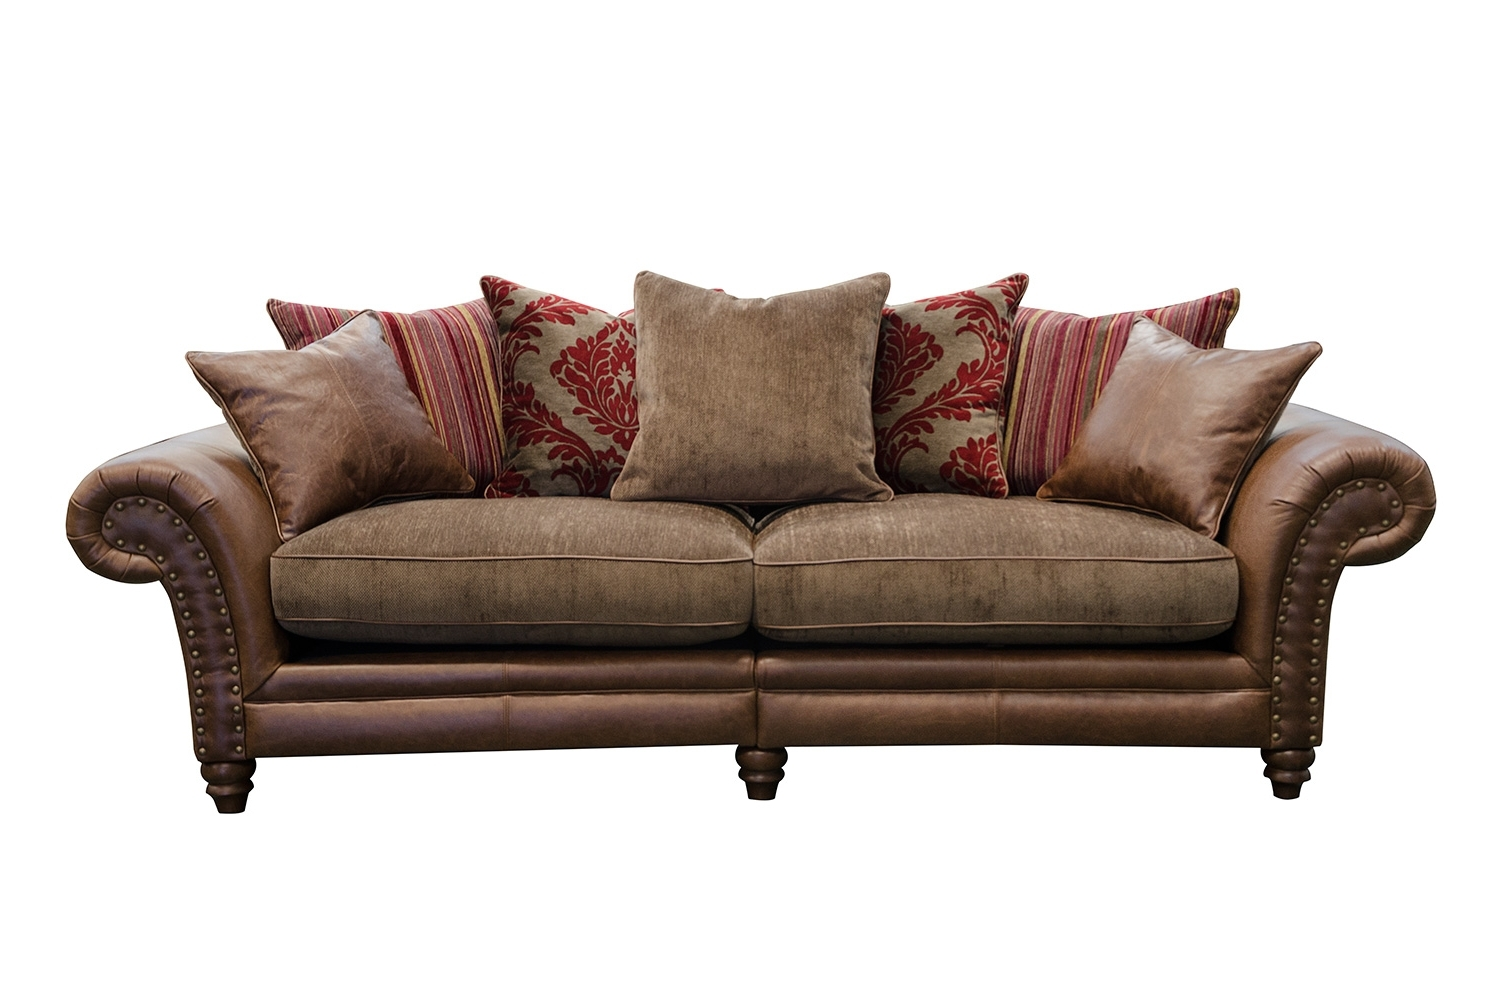 4 Seater Sofas Regarding Current Hudson 4 Seater Sofa – Alexander And James (Gallery 16 of 20)